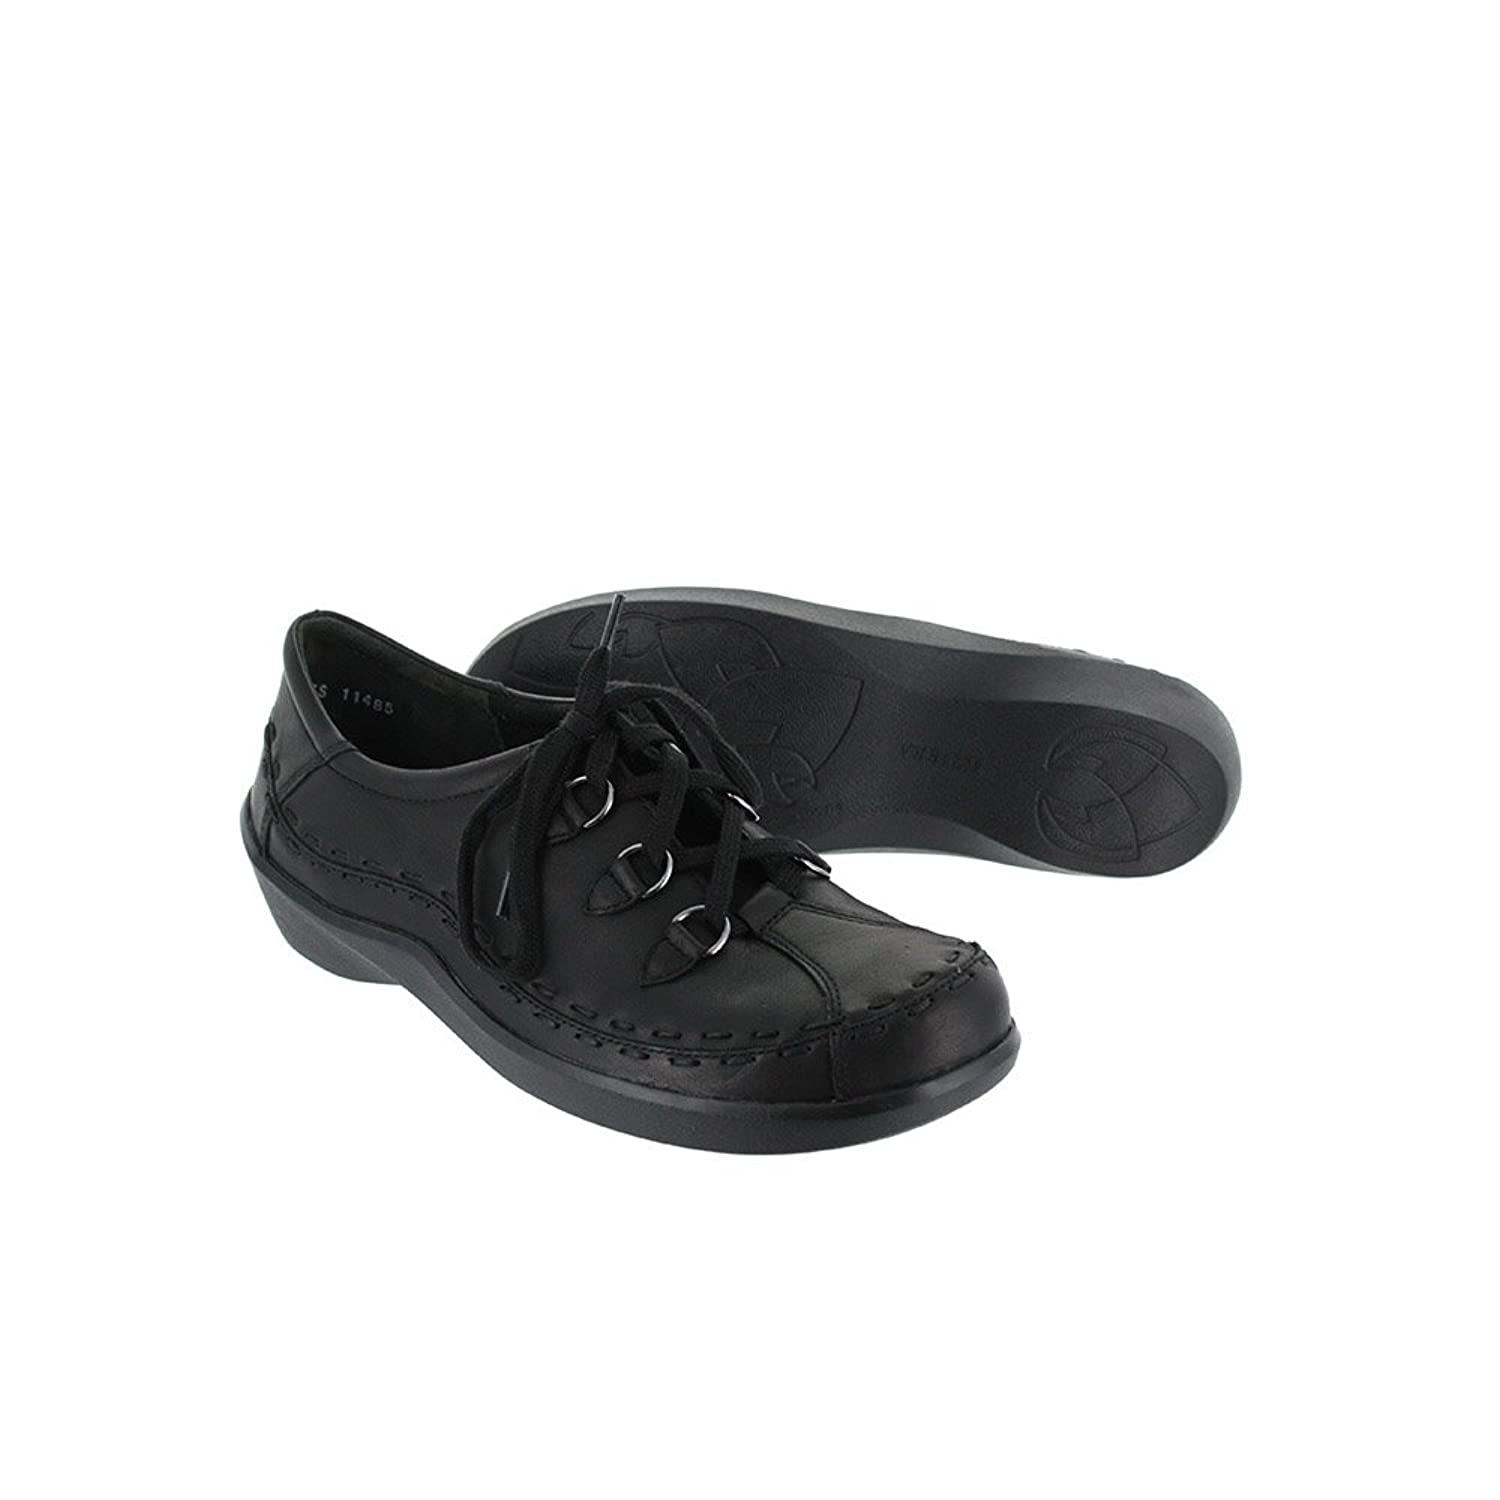 Ziera Women s Allsorts Black Flat 38 XW on sale - appleshack.com.au 37403d472